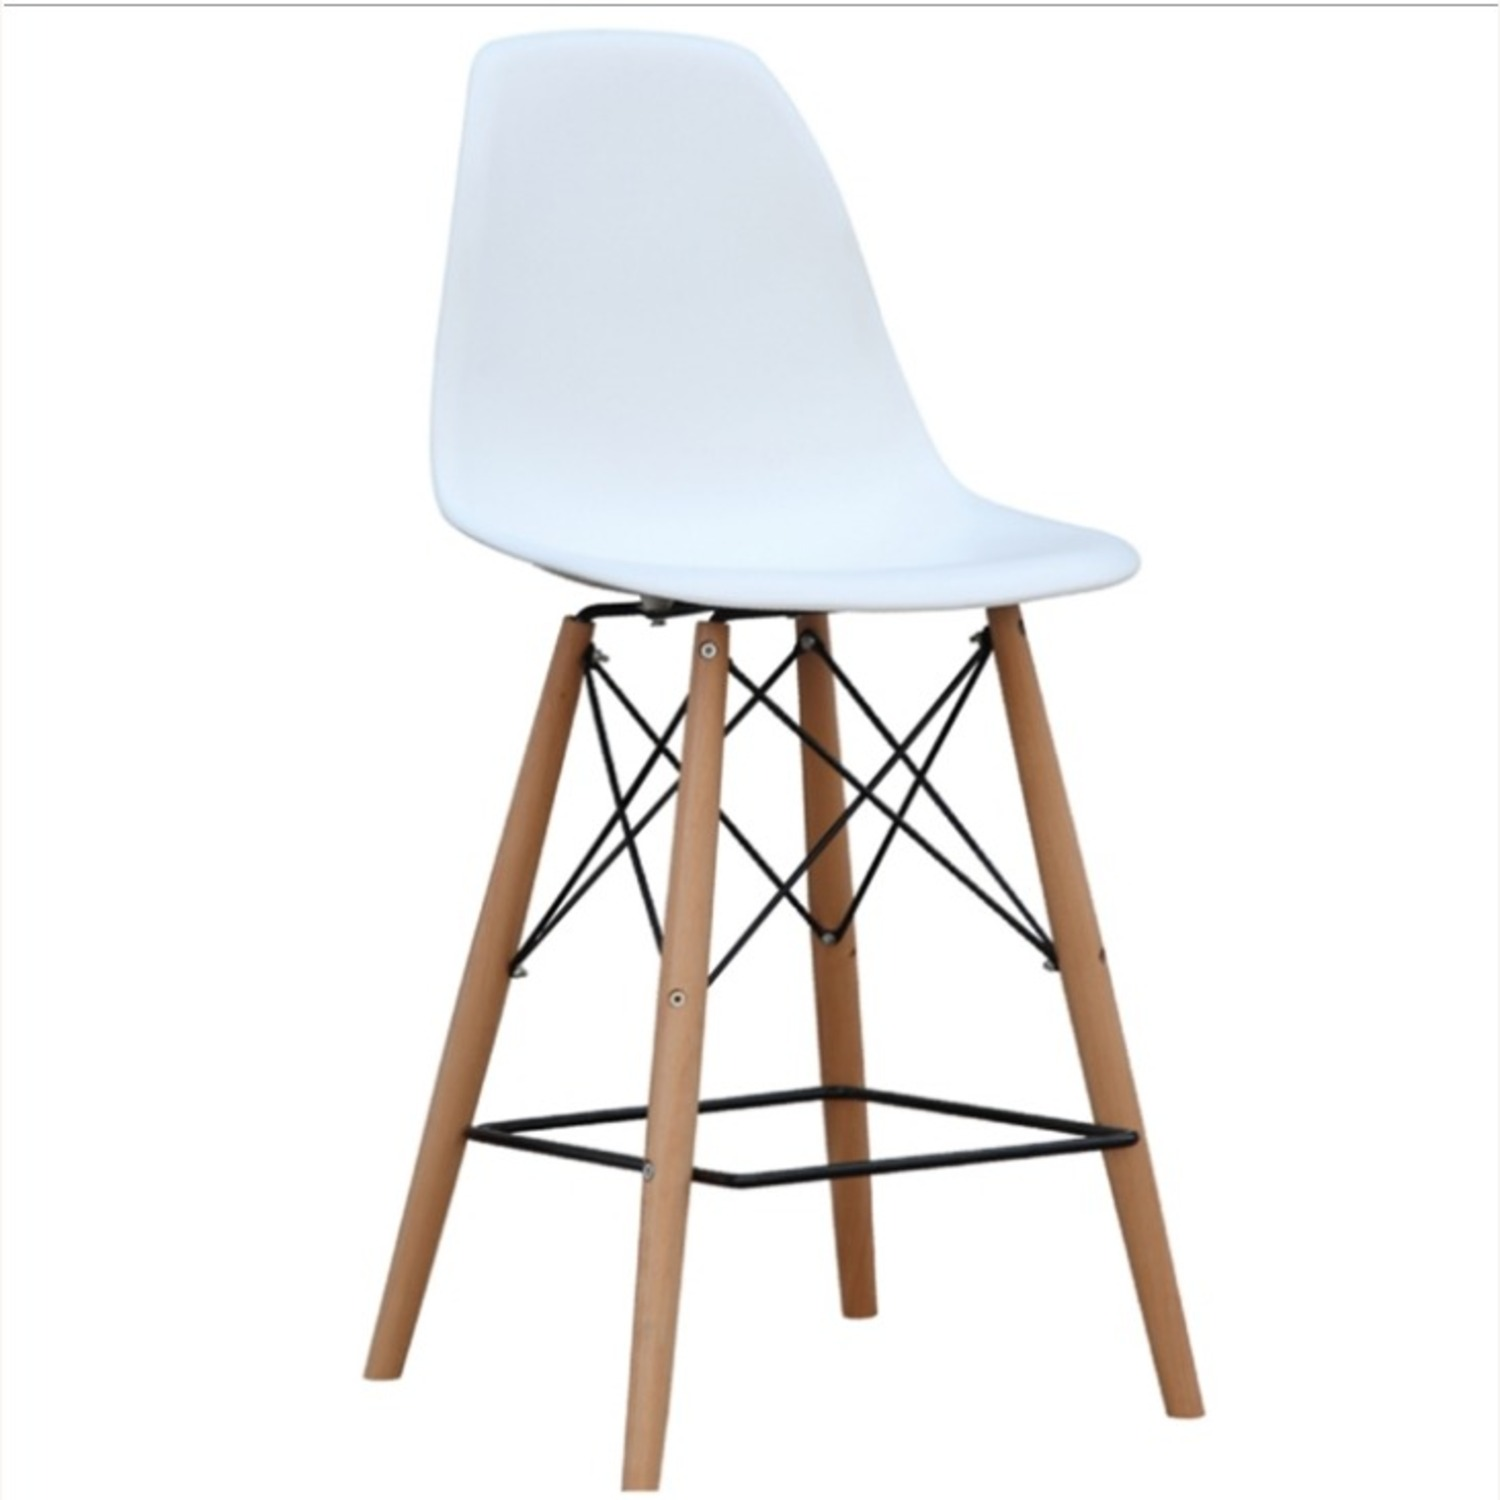 Counter Chair In White ABS Seat W/ Square Base - image-0